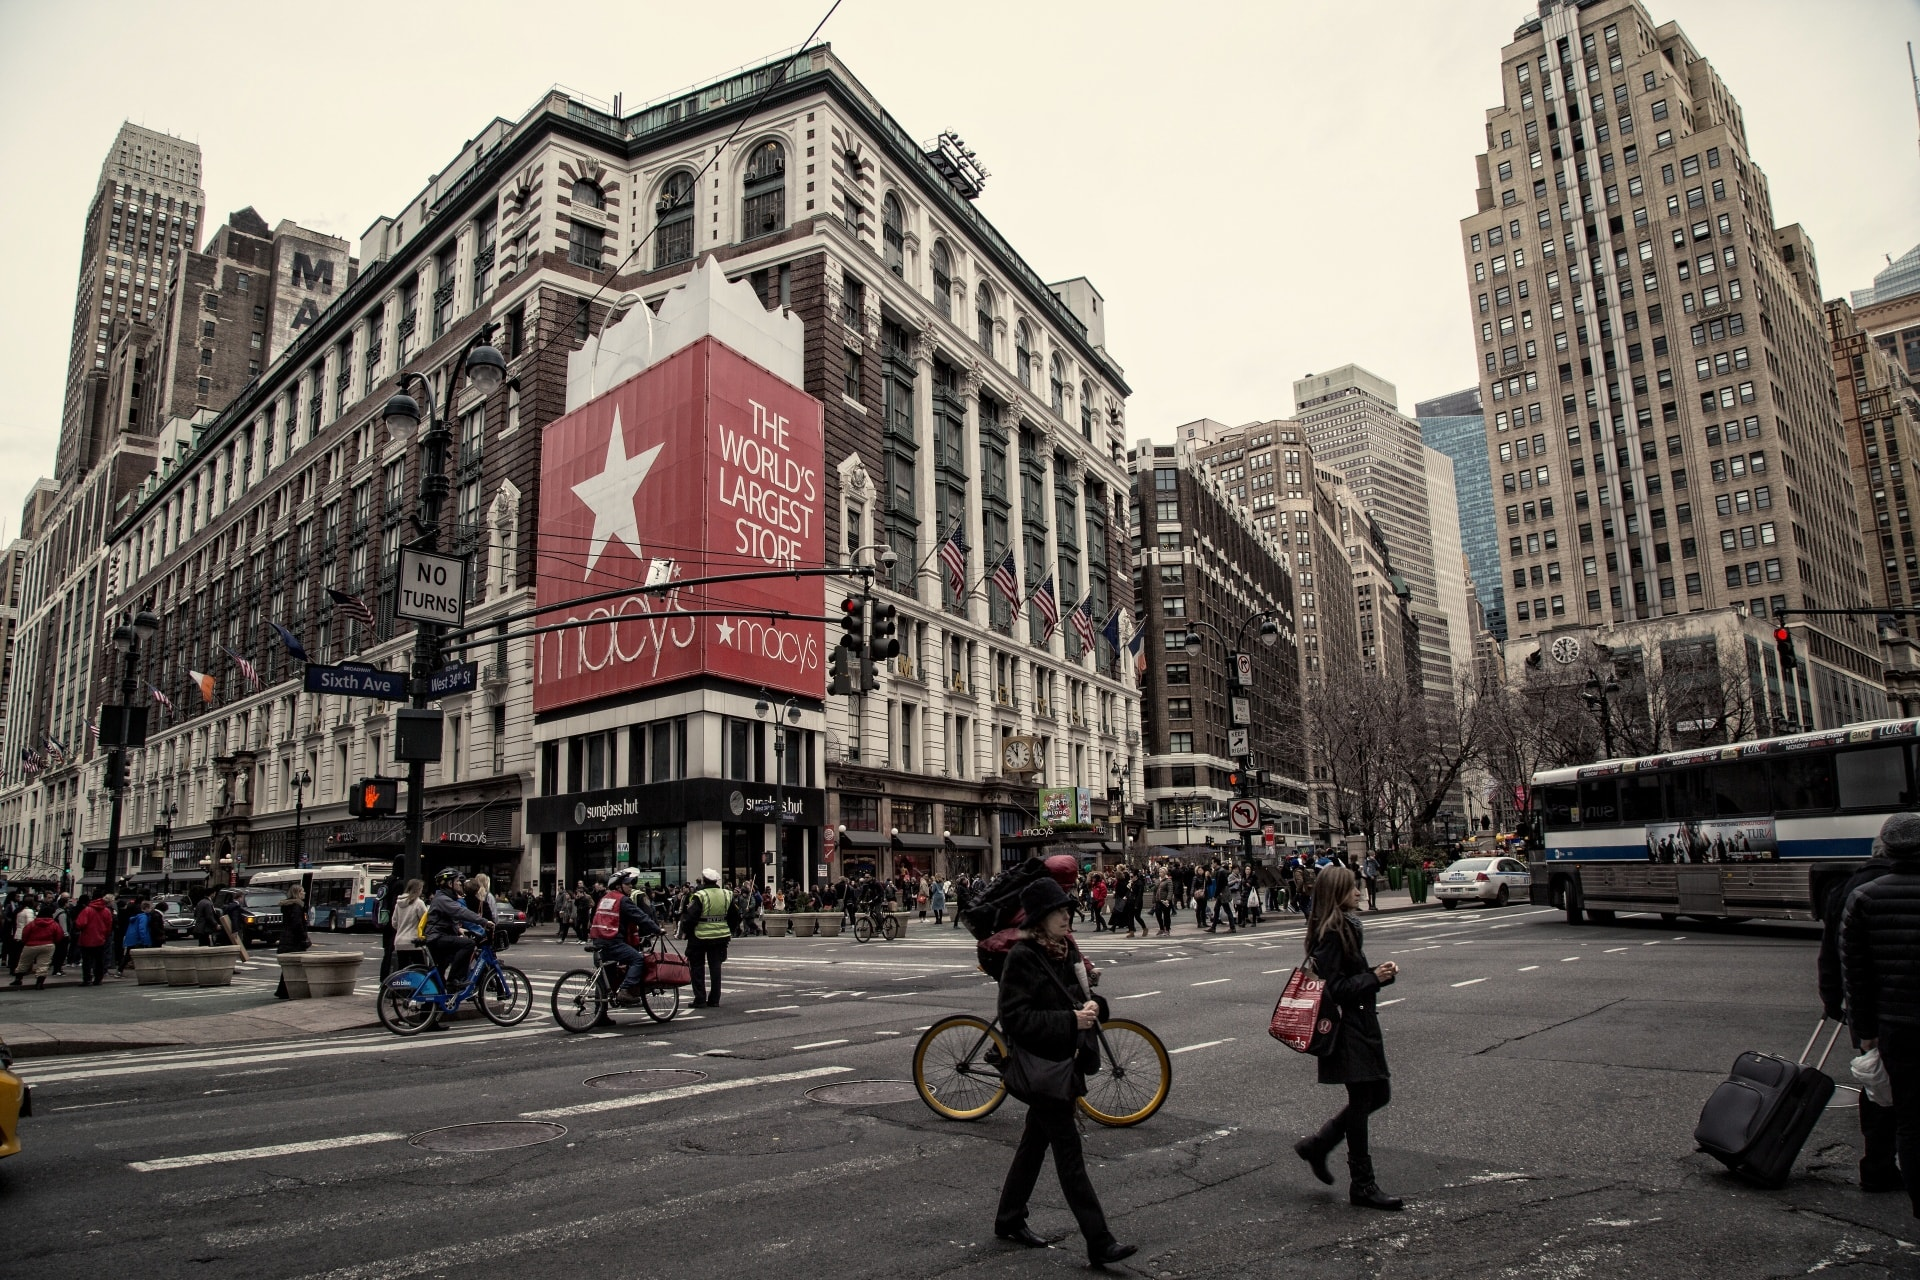 new-york-street-photography-14767006176Ke